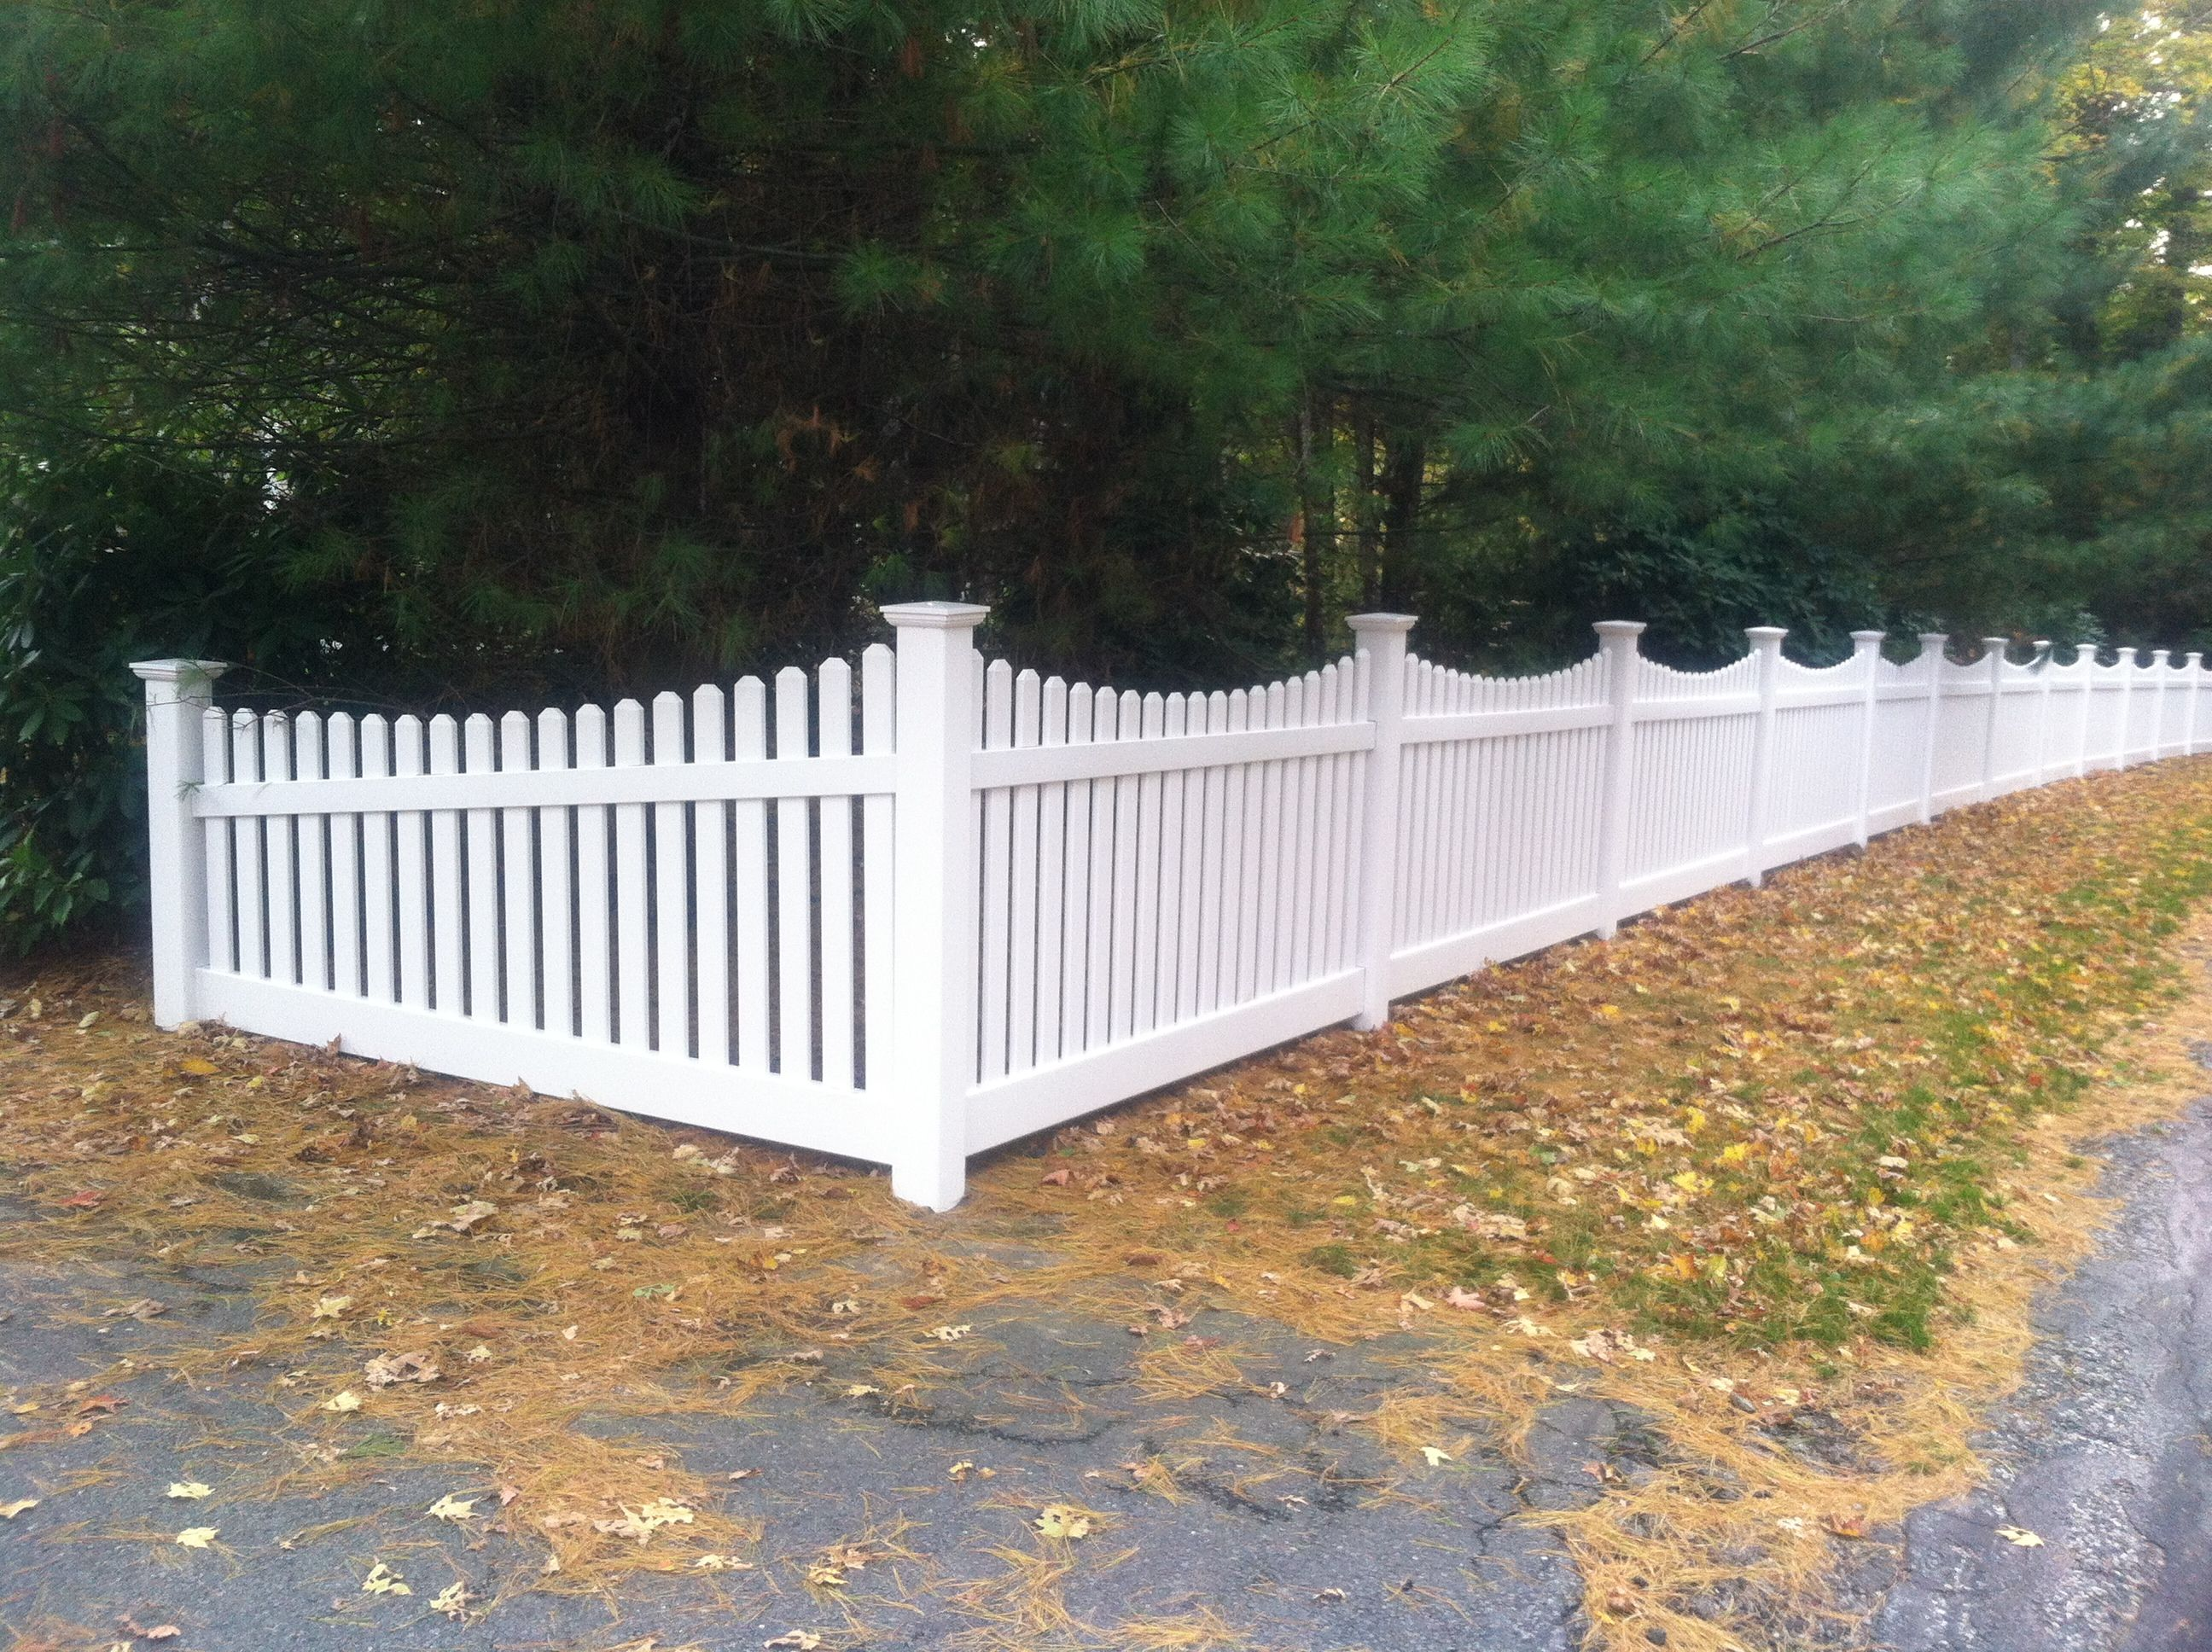 3 Wide Picket Scalloped Top White Pvc Picket Fence Panels Vinyl Picket Fence White Garden Fence